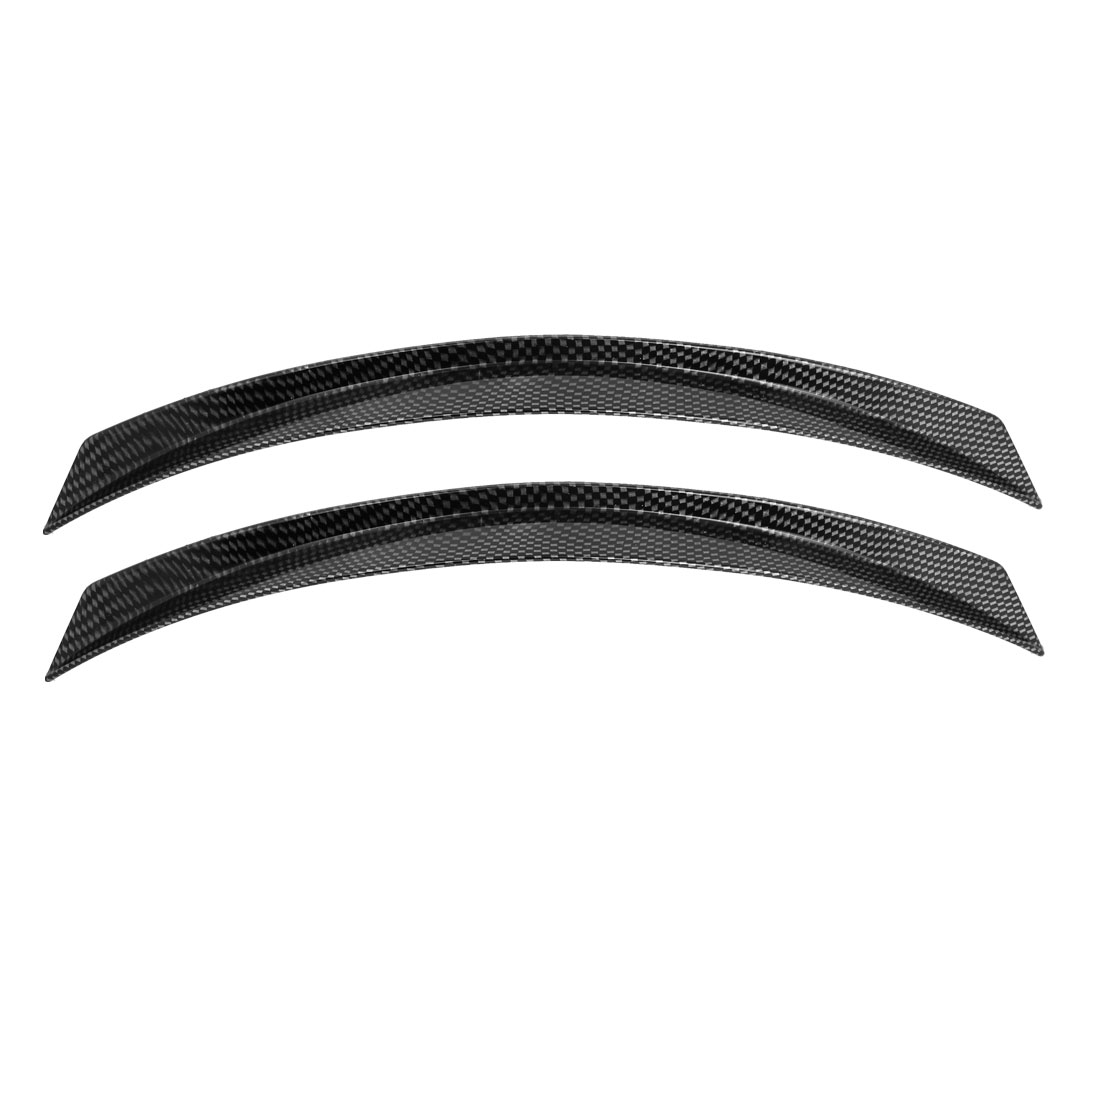 Truck Car Decorative Carbon Fiber Pattern Wheel Arch Eyebrow Strip Decor x 2